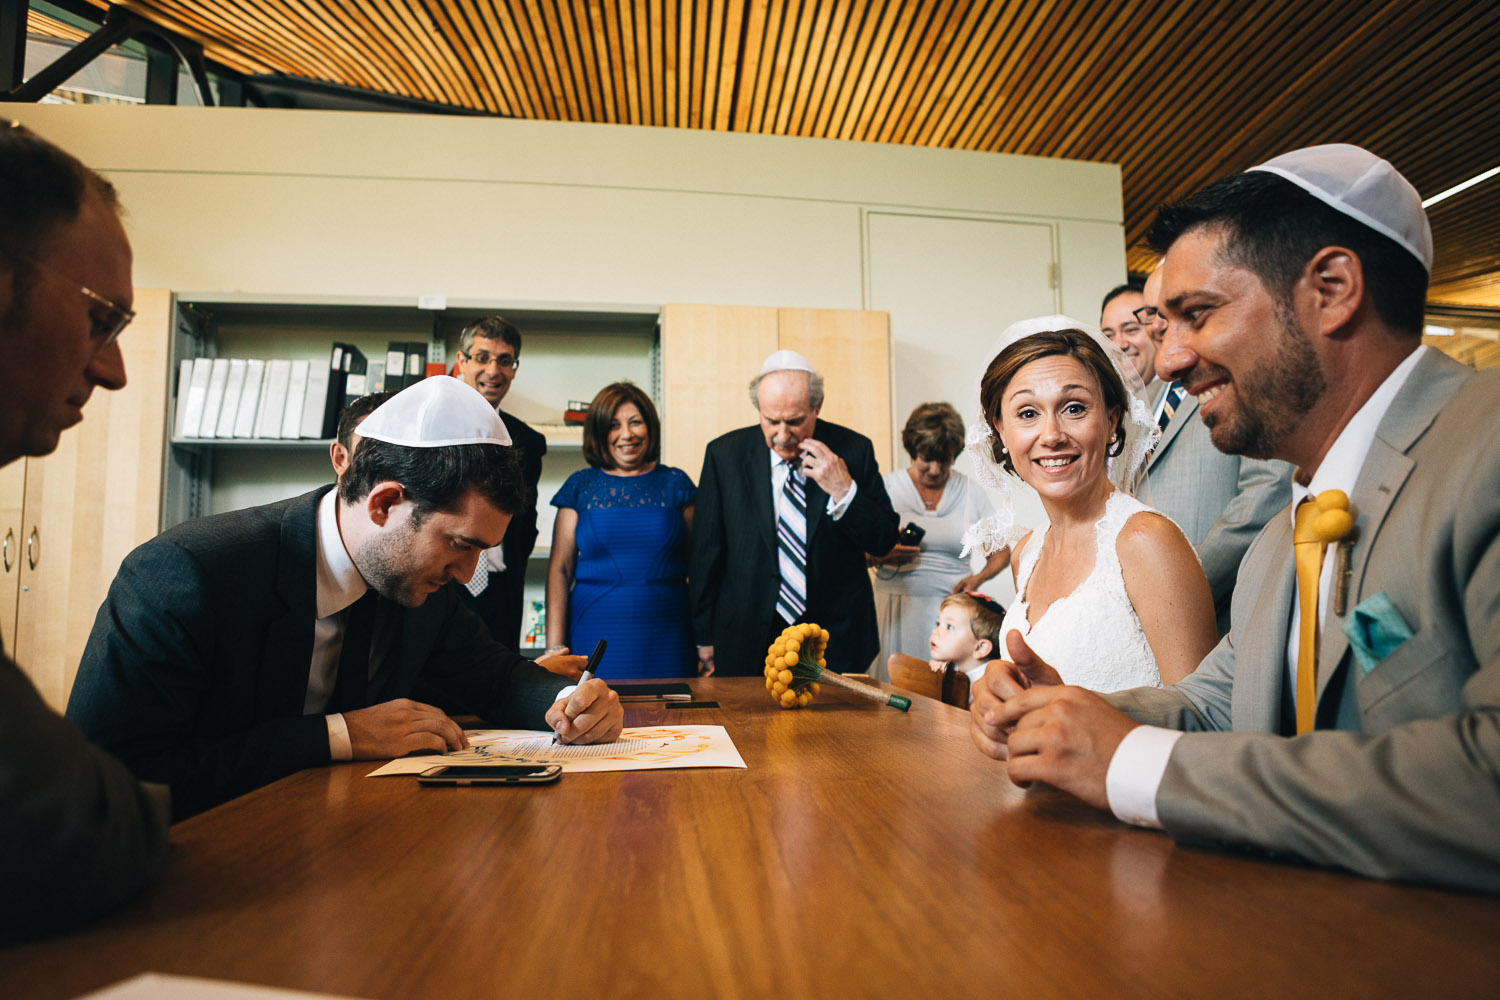 vancouver badeken jewish bride groom ceremony wedding photographer noyo creative